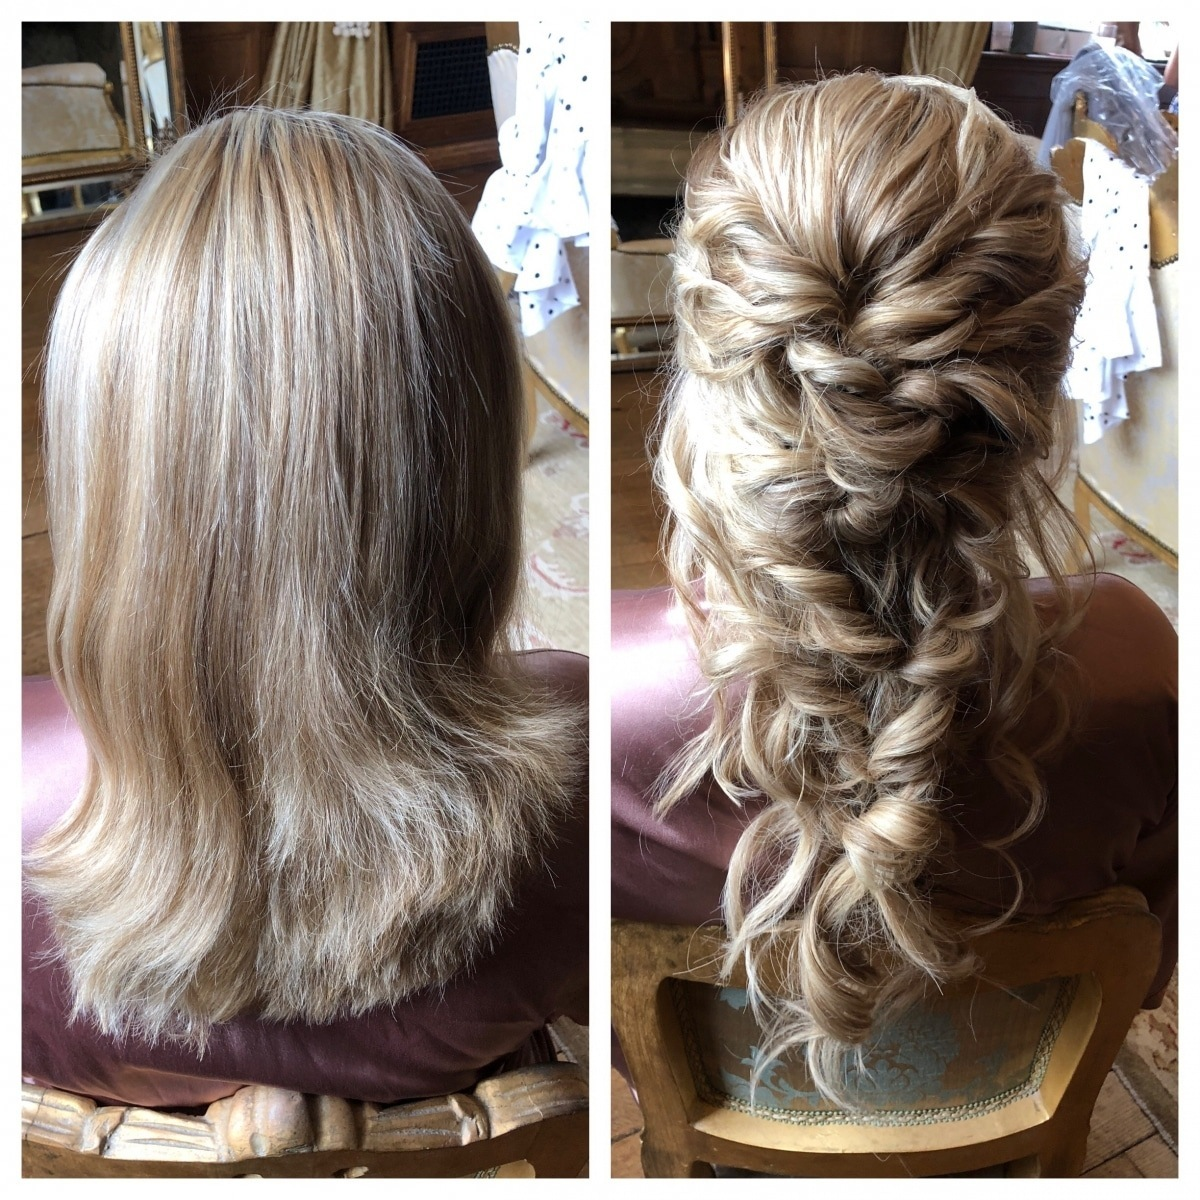 Before and After Wedding Hair - Gemma Sutton